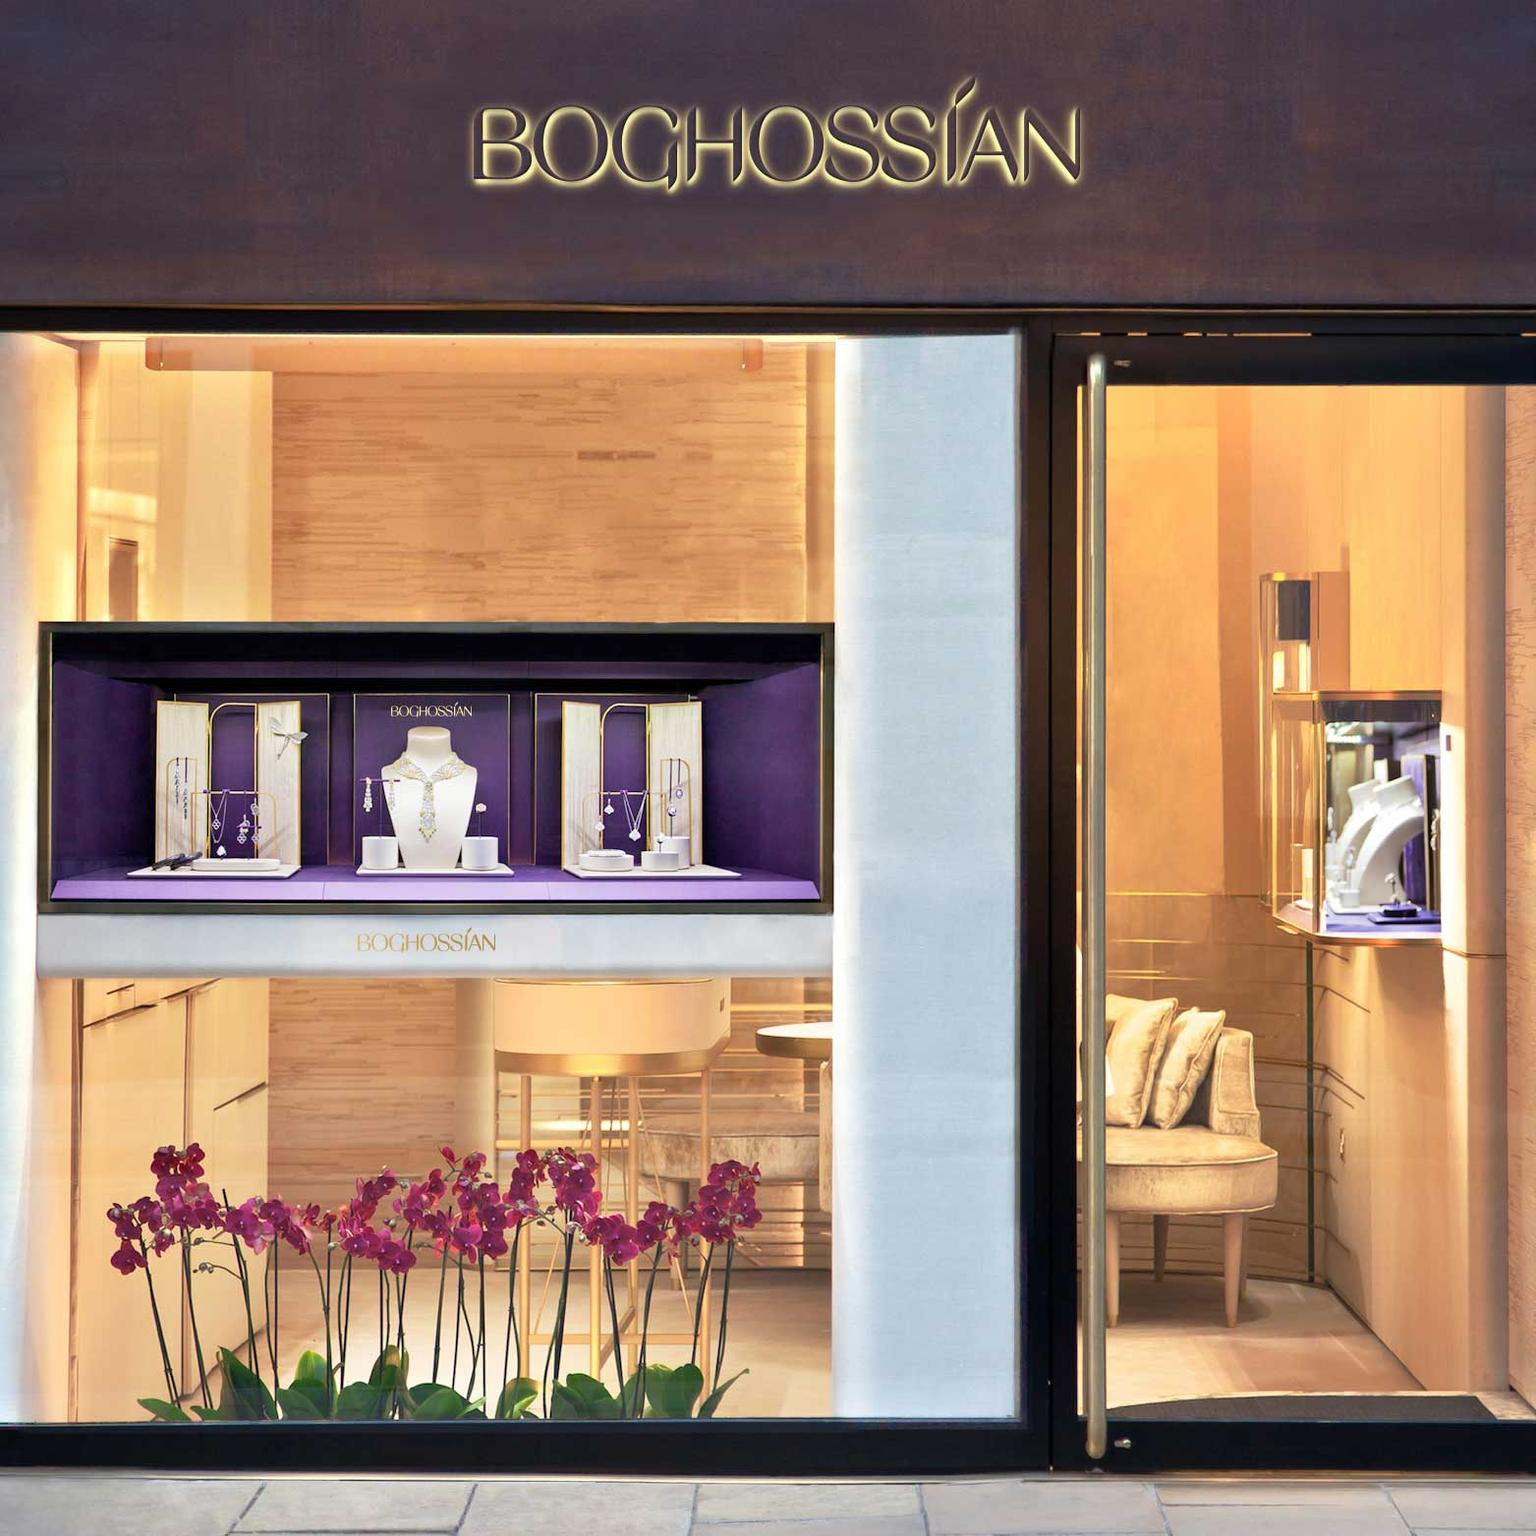 The Boghossian boutique on Bond Street in London